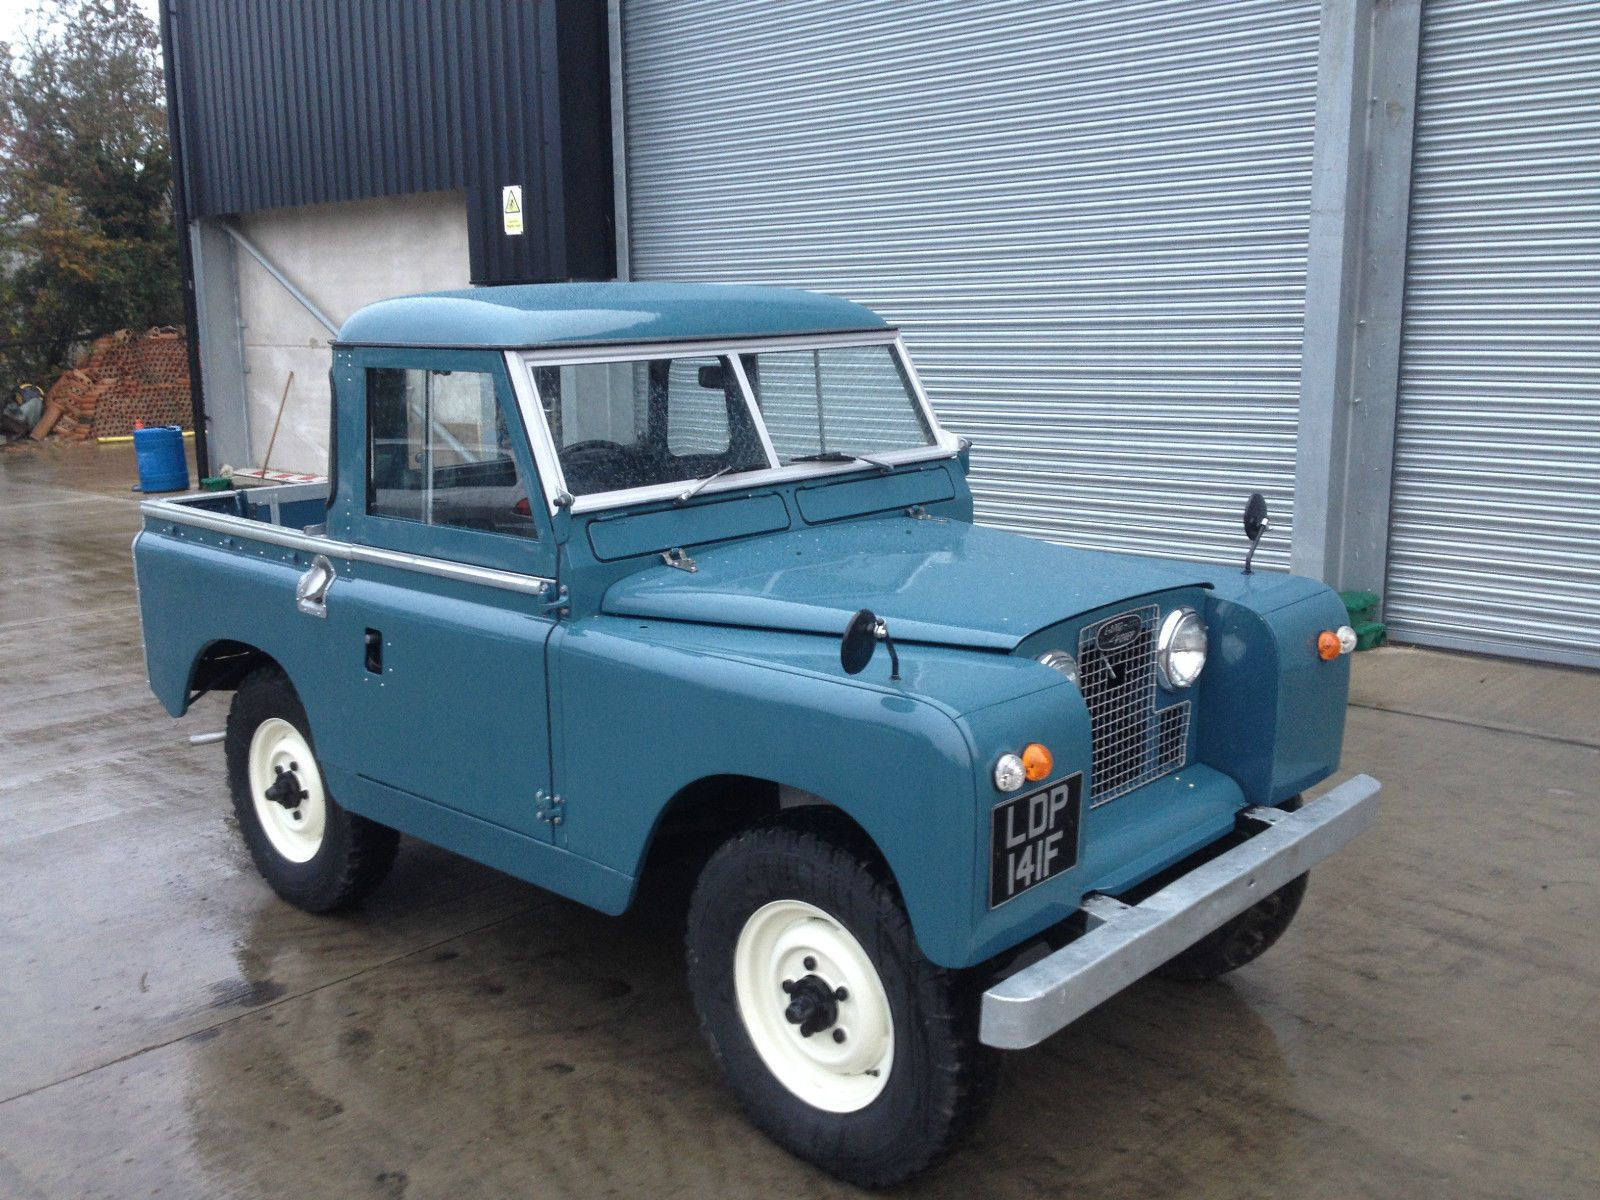 this is a land rover series 2 a 1967 truckcab marine blue no work needed starts and drives as. Black Bedroom Furniture Sets. Home Design Ideas